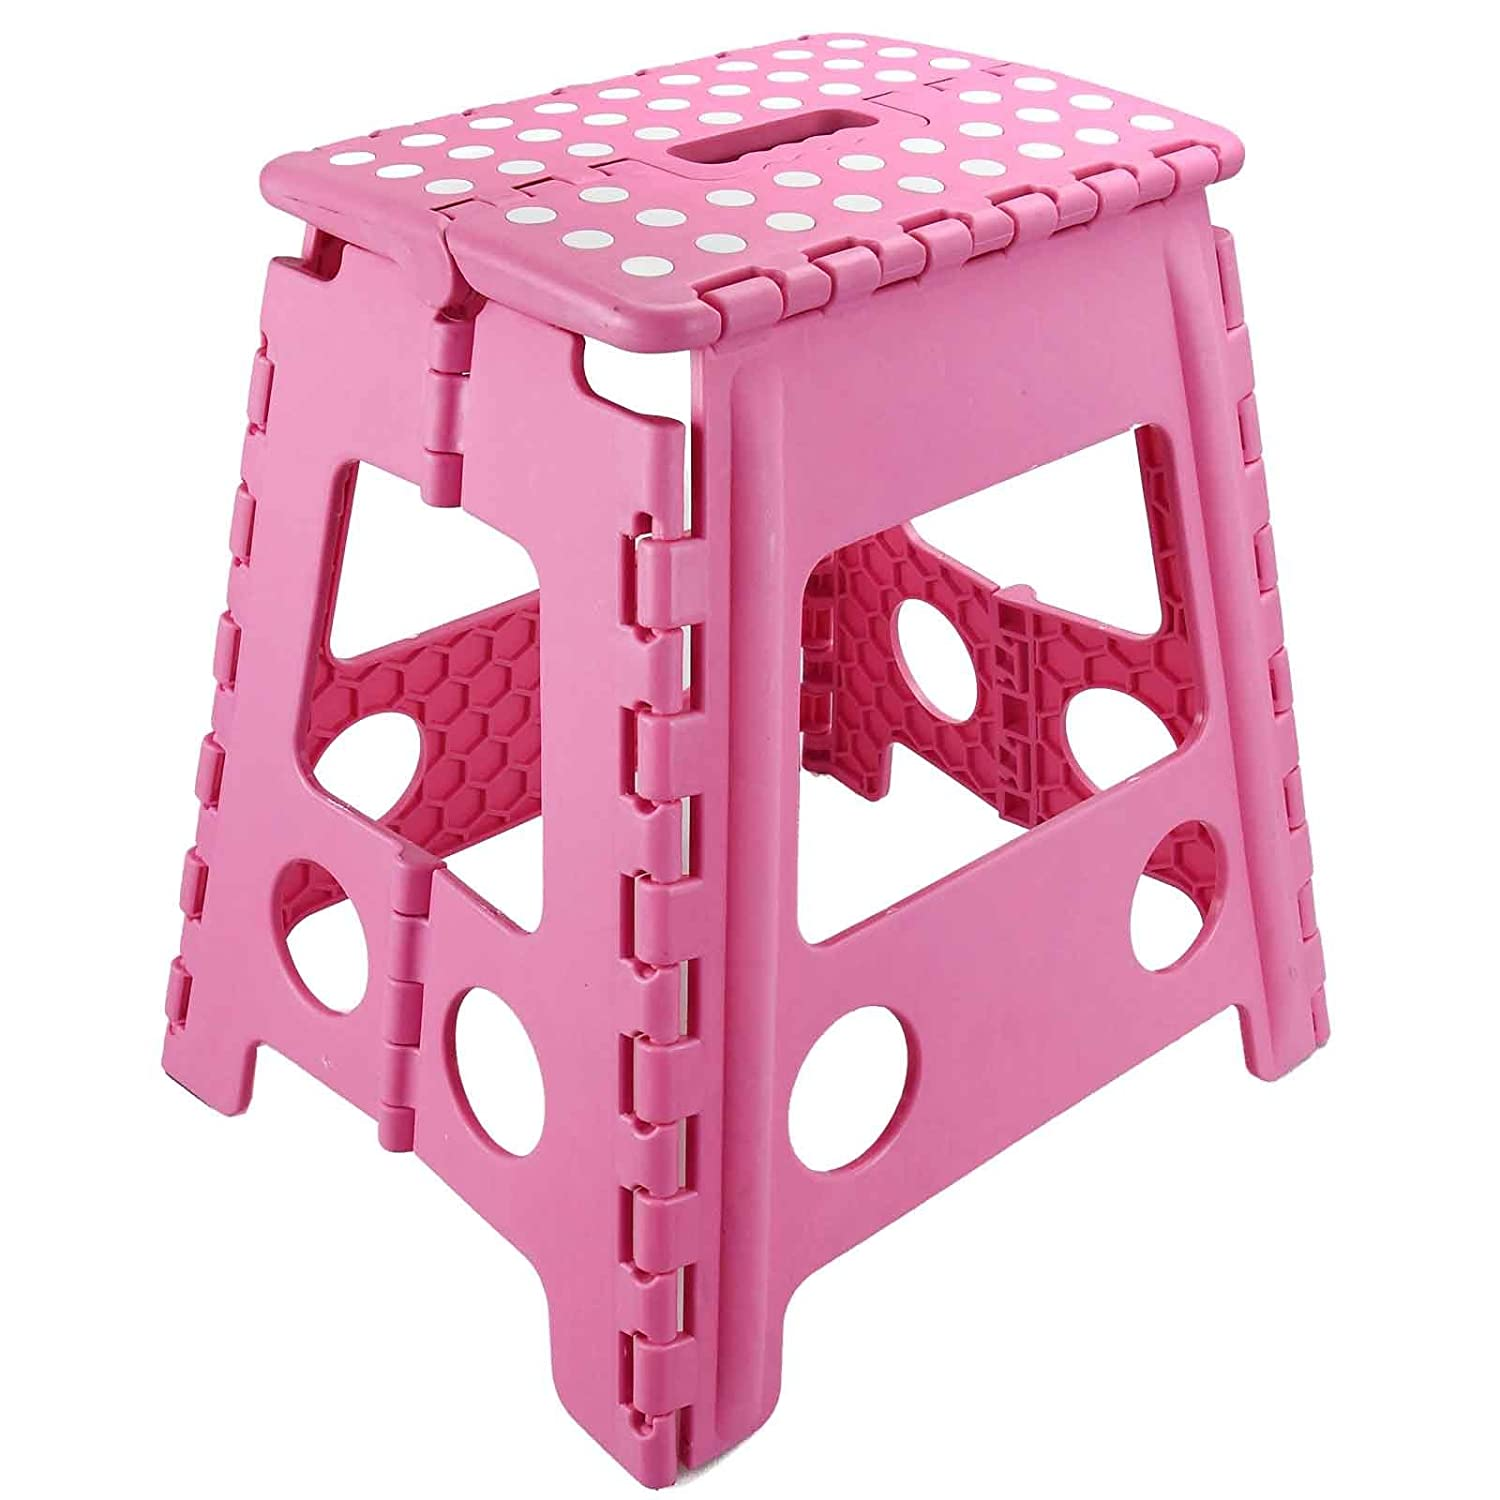 ASAB Large Folding Foot Step Stool Multi Purpose Plastic Foldable Easy Storage Home Kitchen - Pink